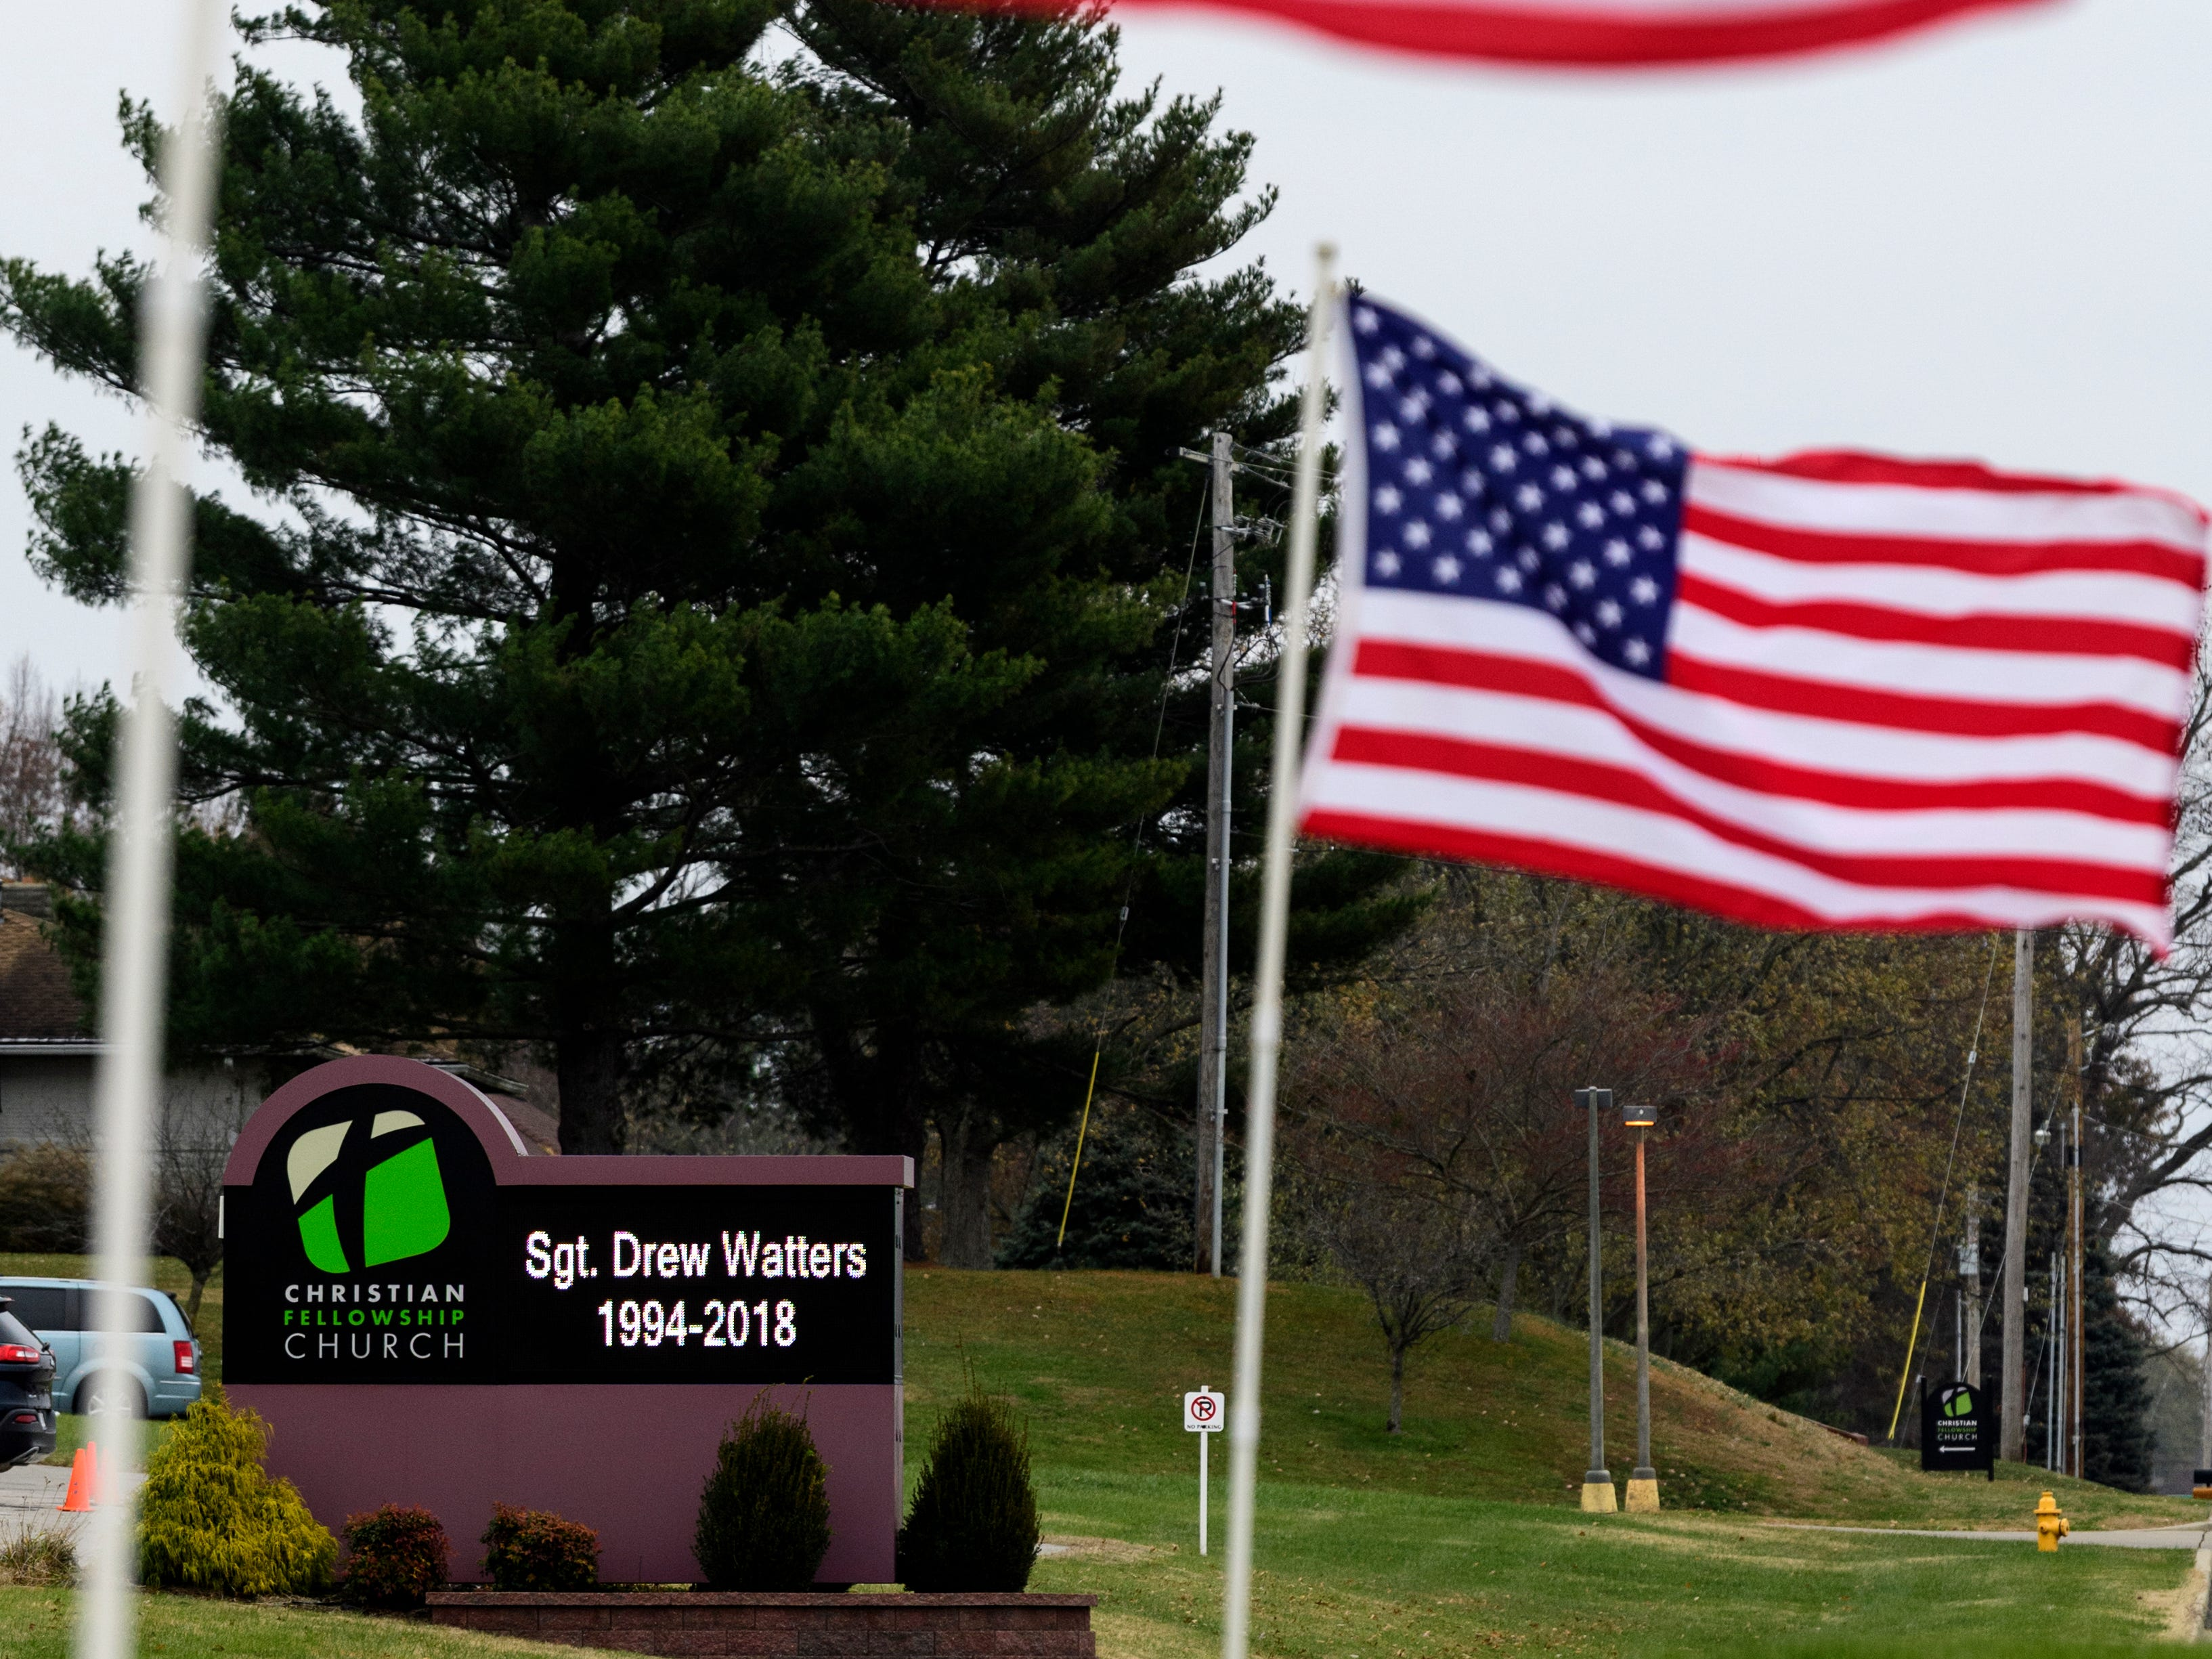 """Flags wave outside of Evansville's Christian Fellowship Church, where a visitation for U.S. Army Sgt. Drew Watters is held,Tuesday evening, Nov. 13, 2018. A """"Celebration of Life"""" ceremony, including military honors, will be held inside the church at 2 p.m. Wednesday, Nov. 14."""